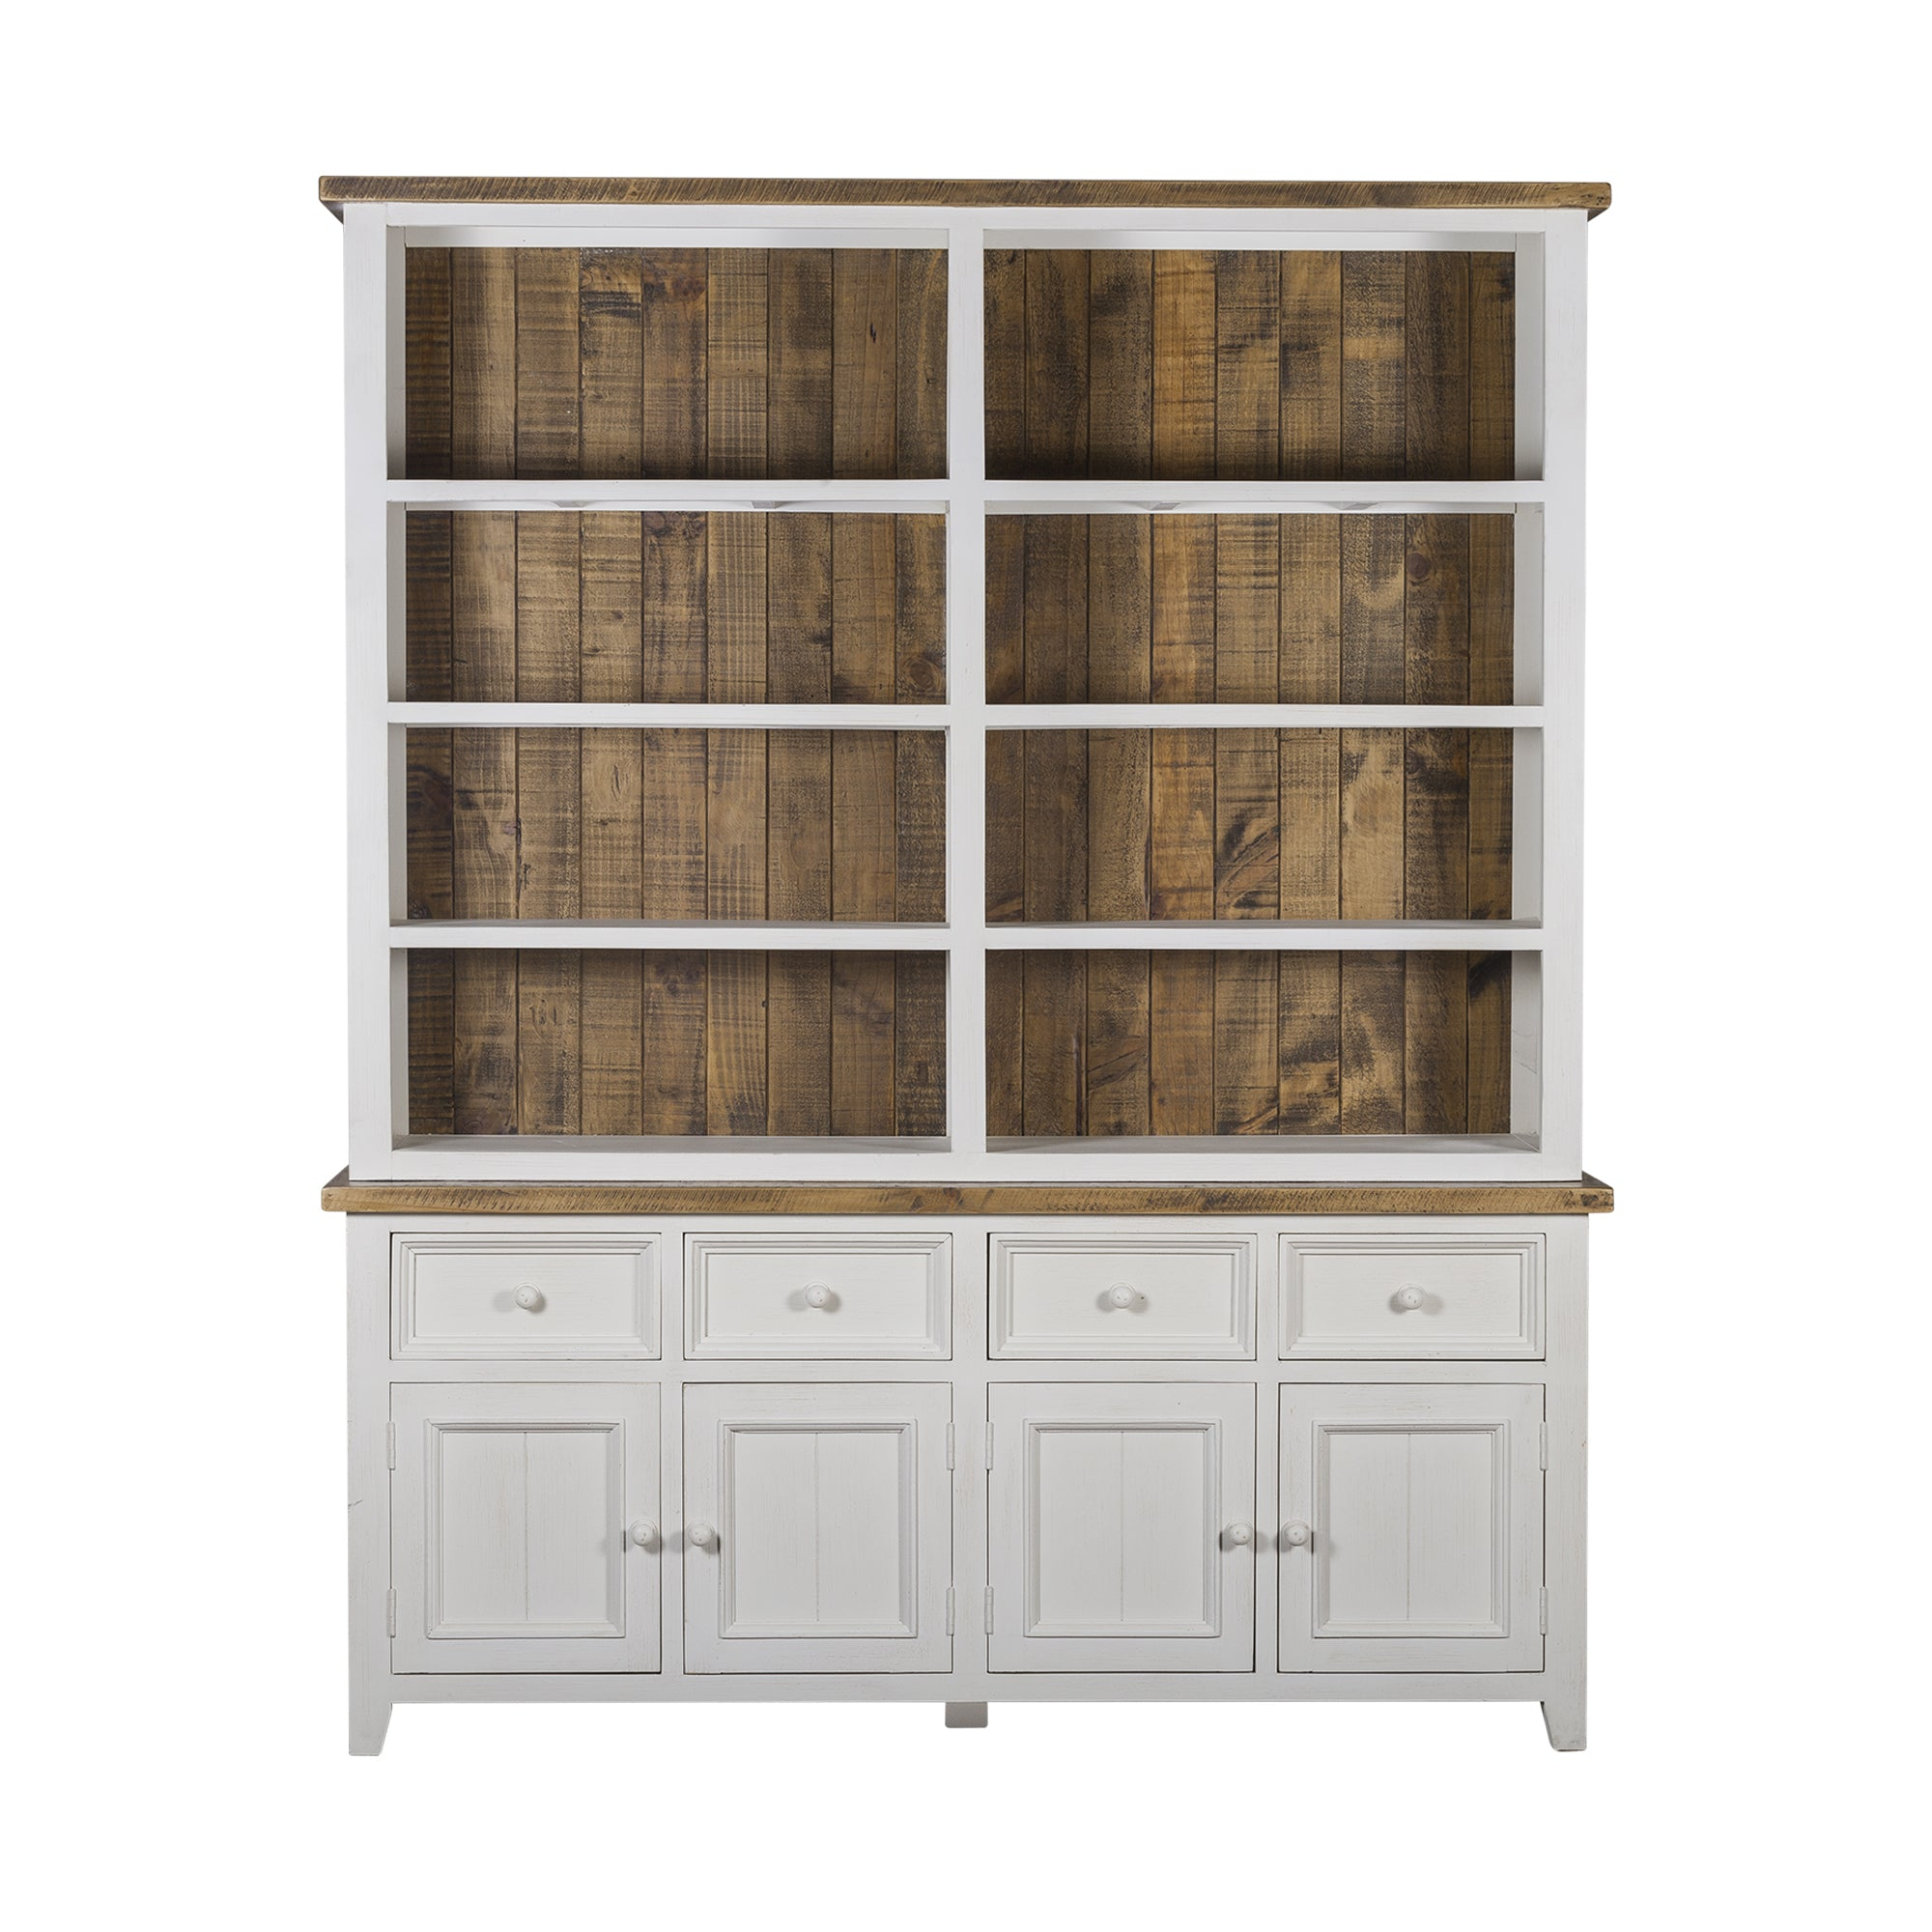 Bayswater Large Bookcase - The Furniture Store & The Bed Shop